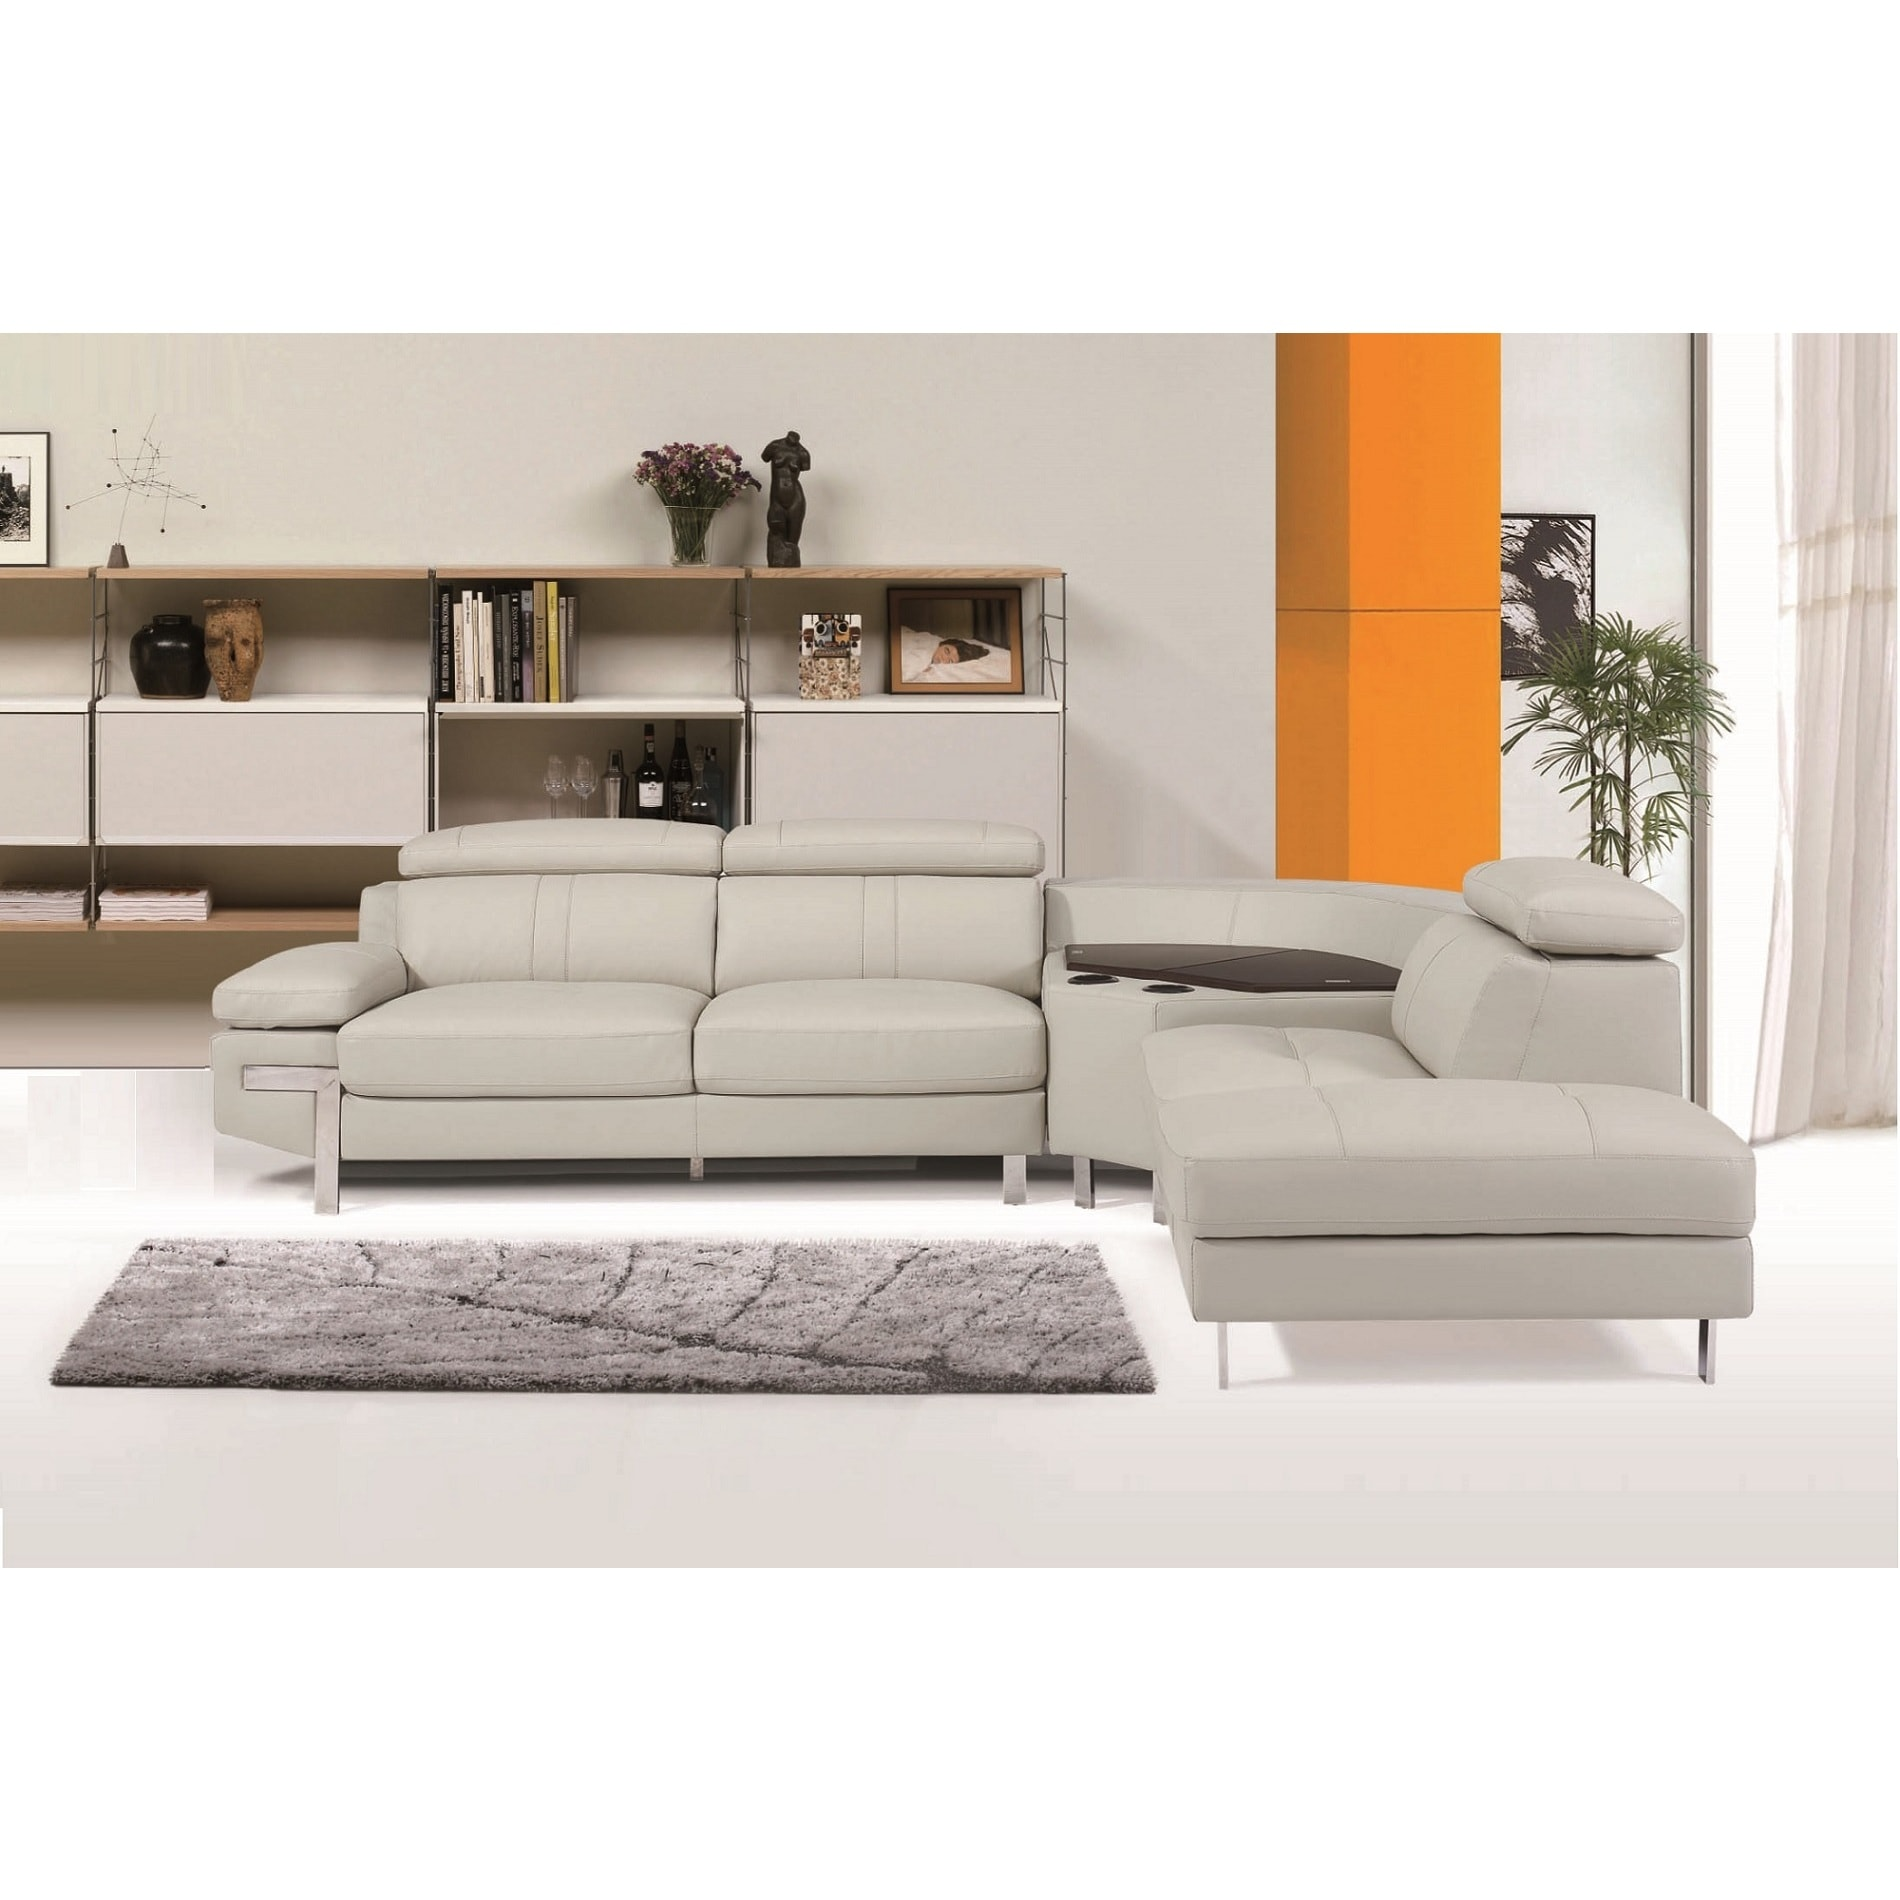 Tremendous Grey Faux Leather Continental Sectional Gamerscity Chair Design For Home Gamerscityorg